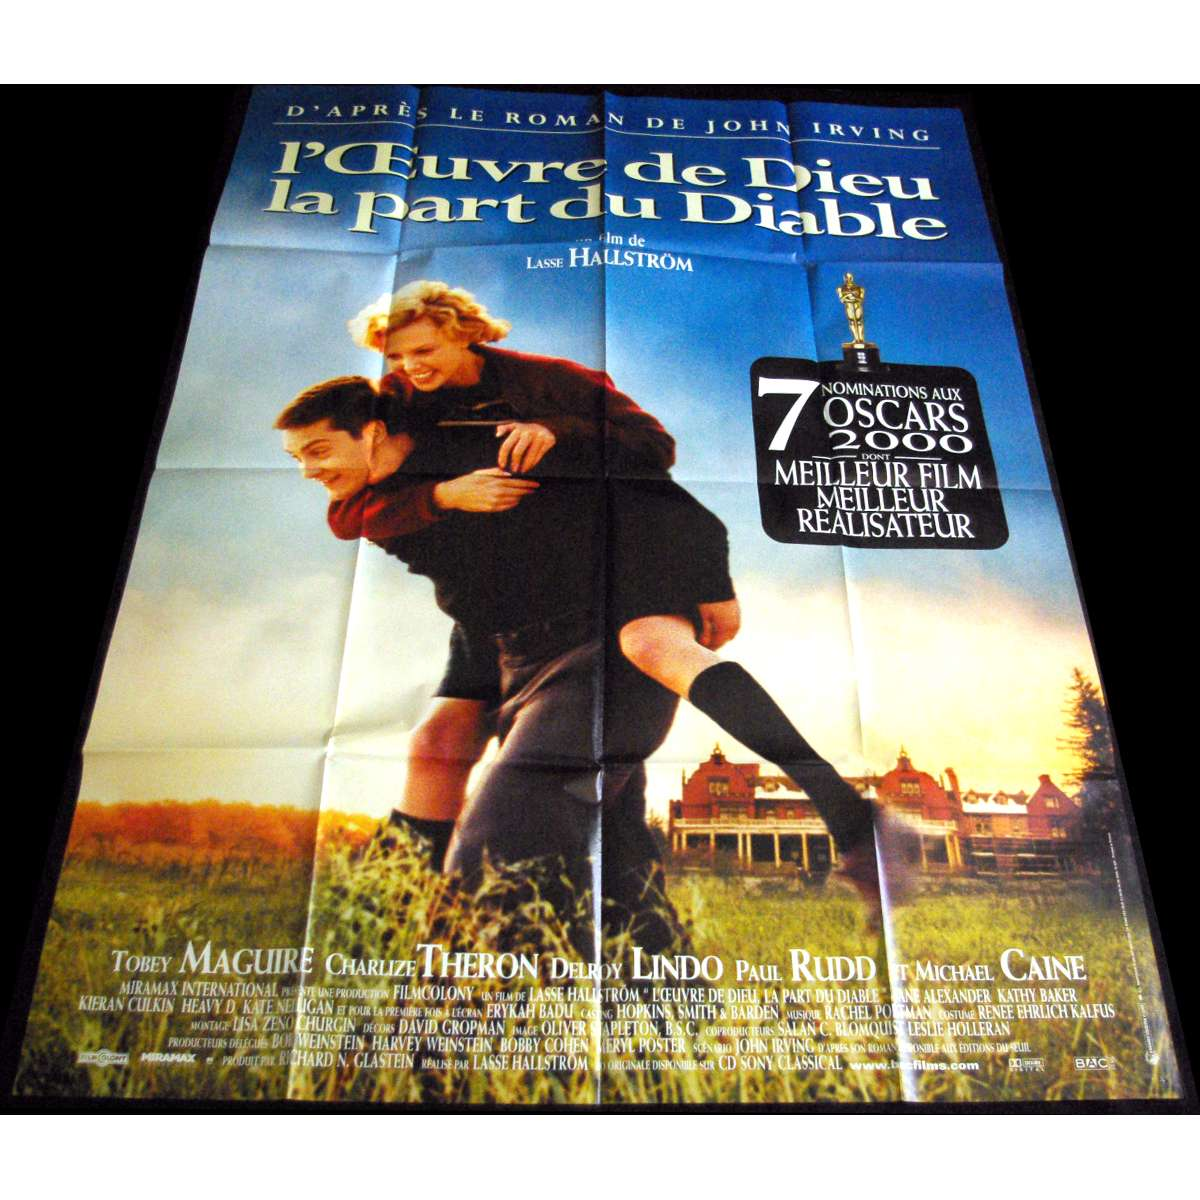 THE CIDER HOUSE RULES French Movie Poster 47x63 U002799 John Irving